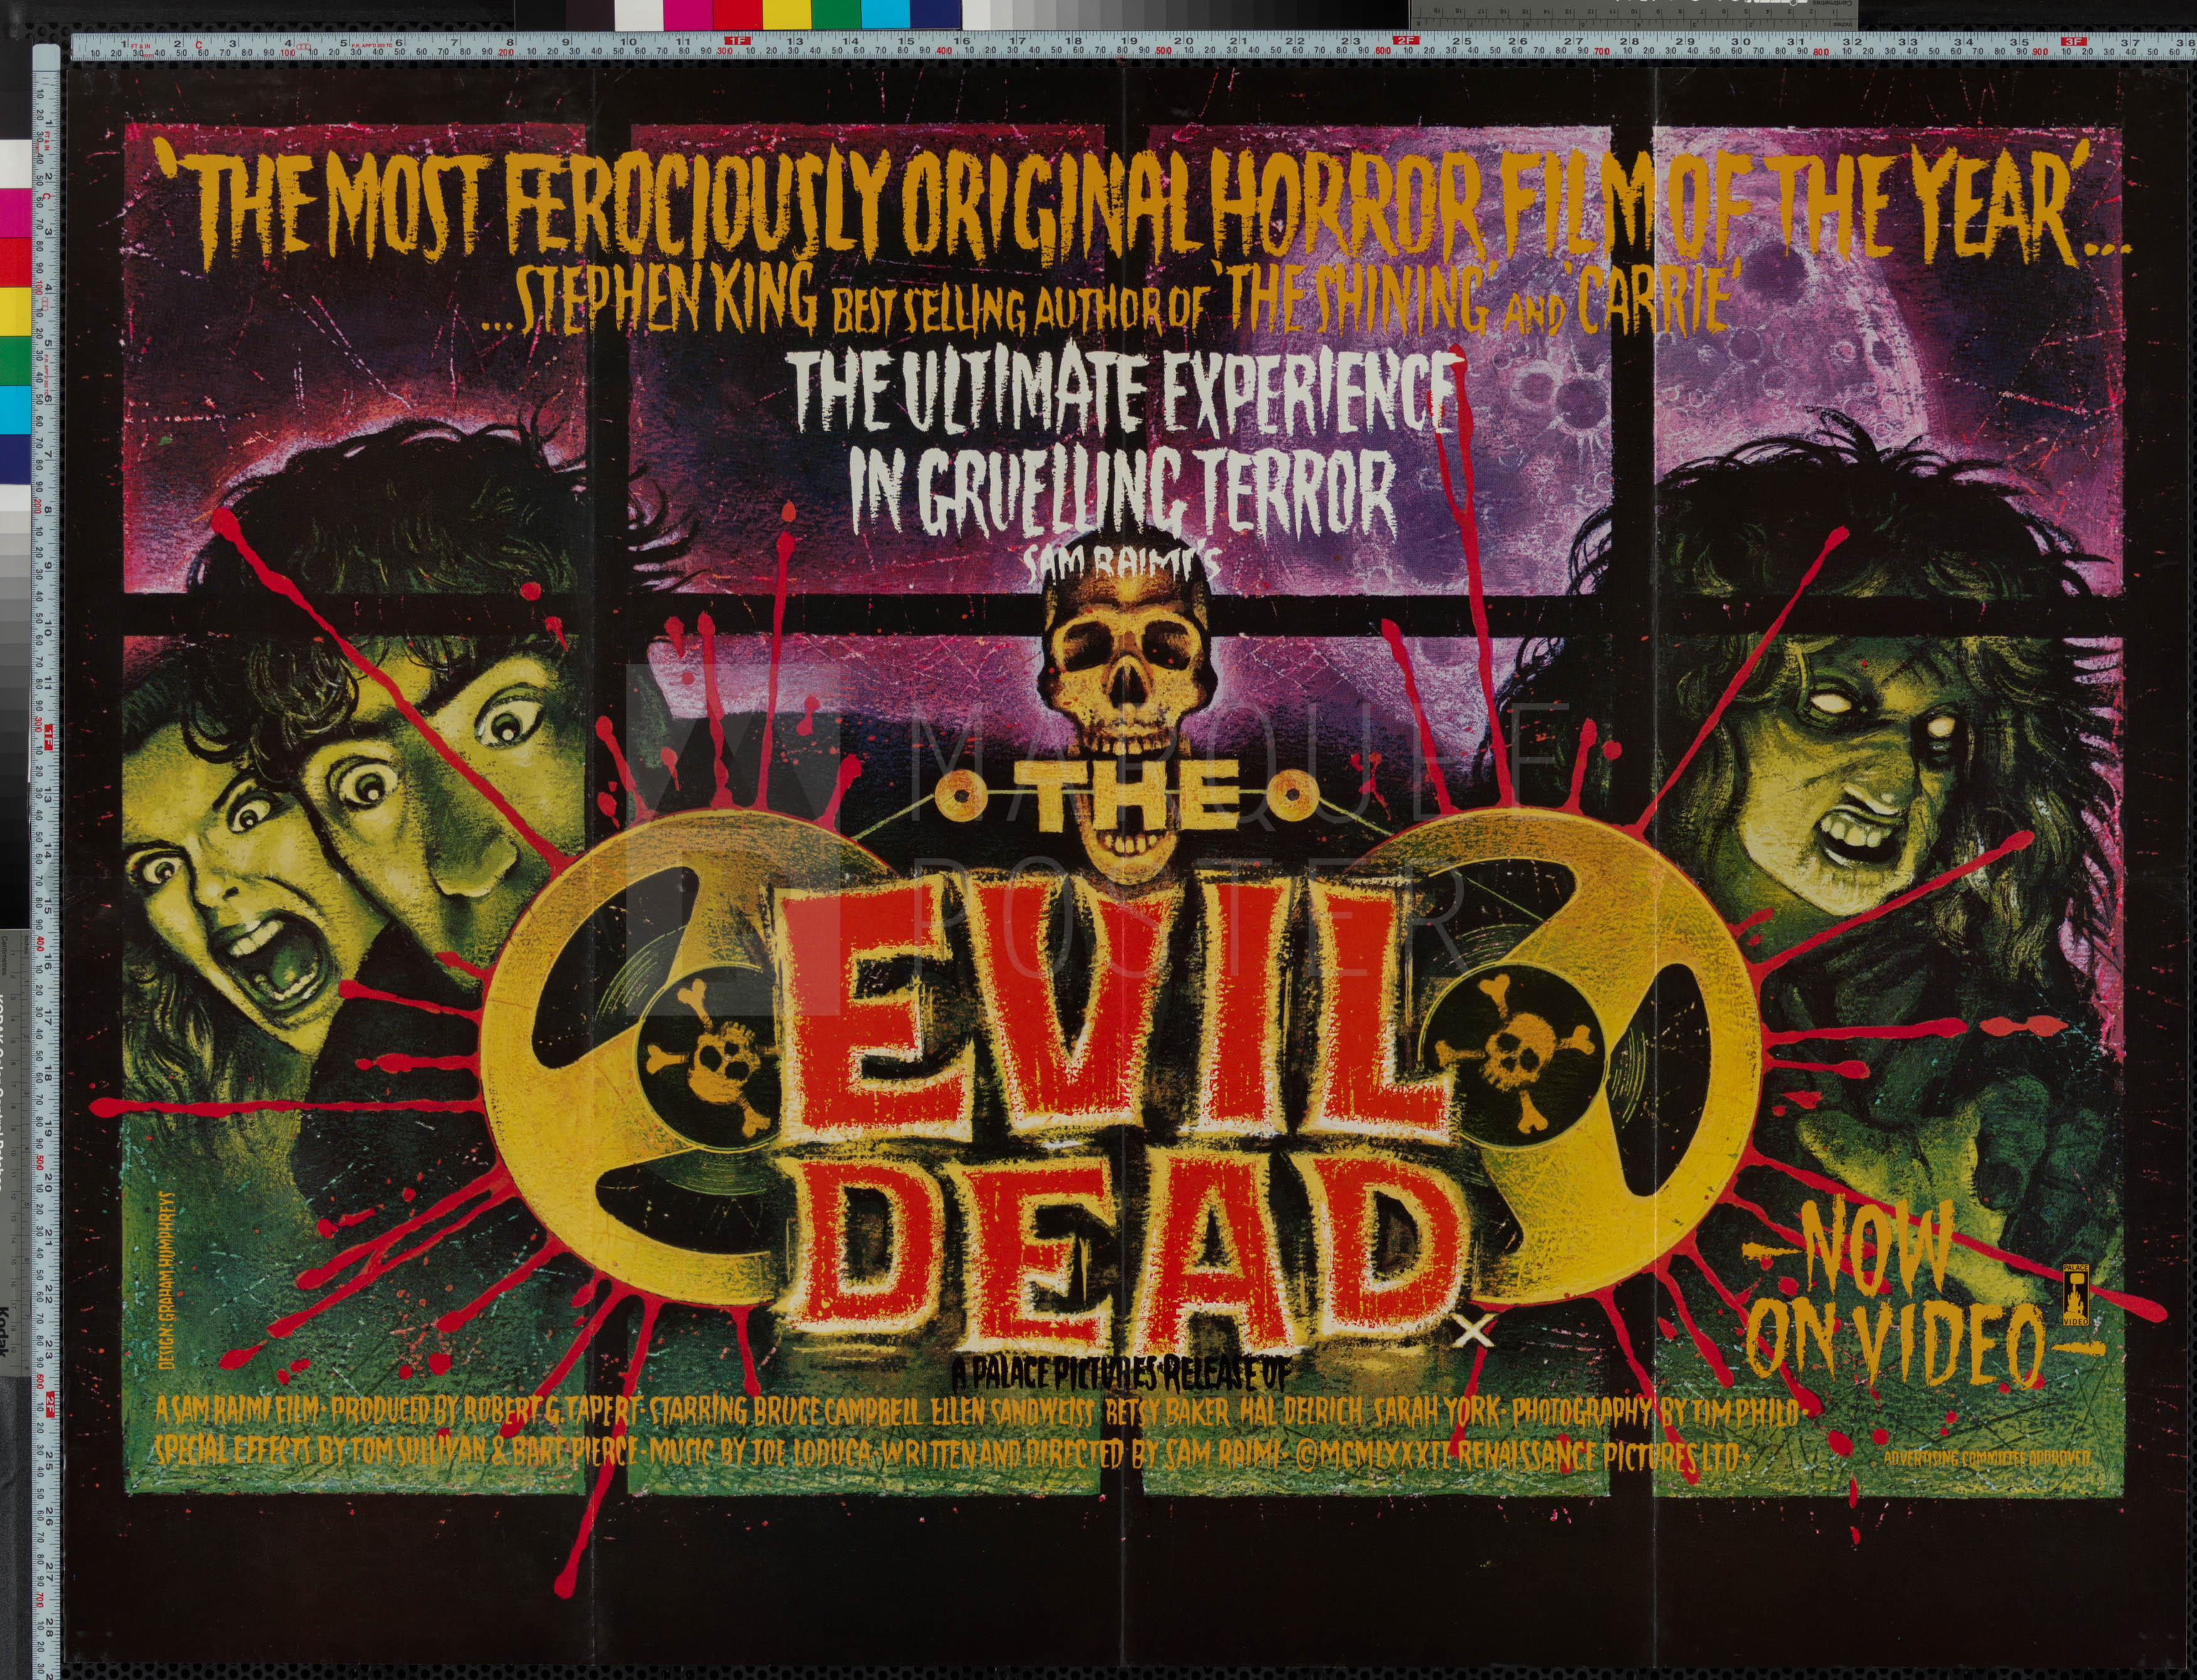 44-evil-dead-video-uk-quad-1982-02